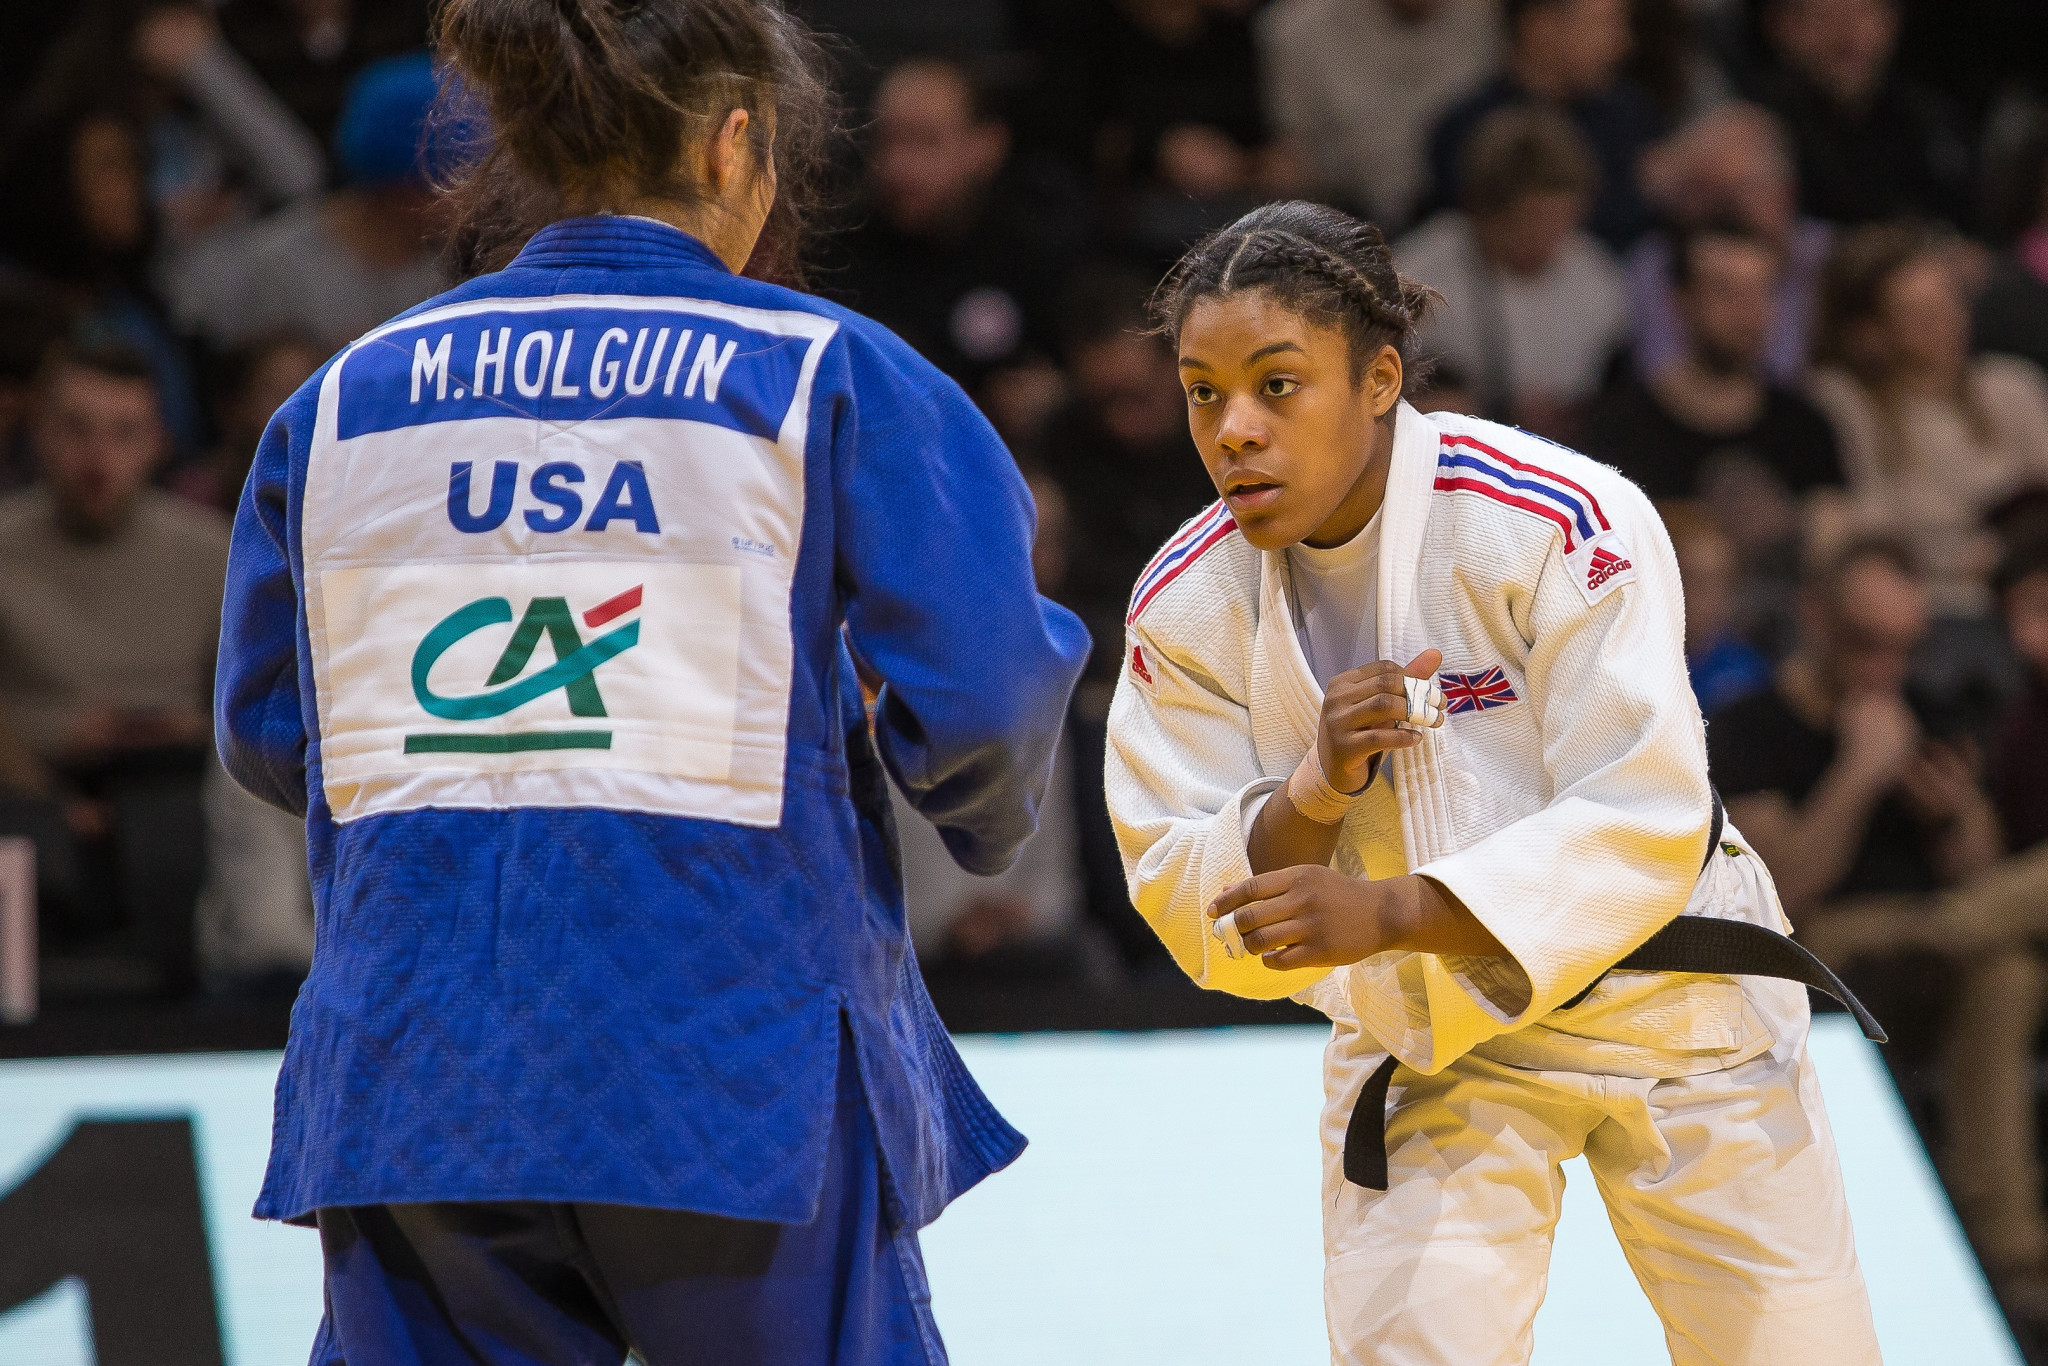 Nekoda Smythe-Davis won gold in the women's 57kg division ©British Judo